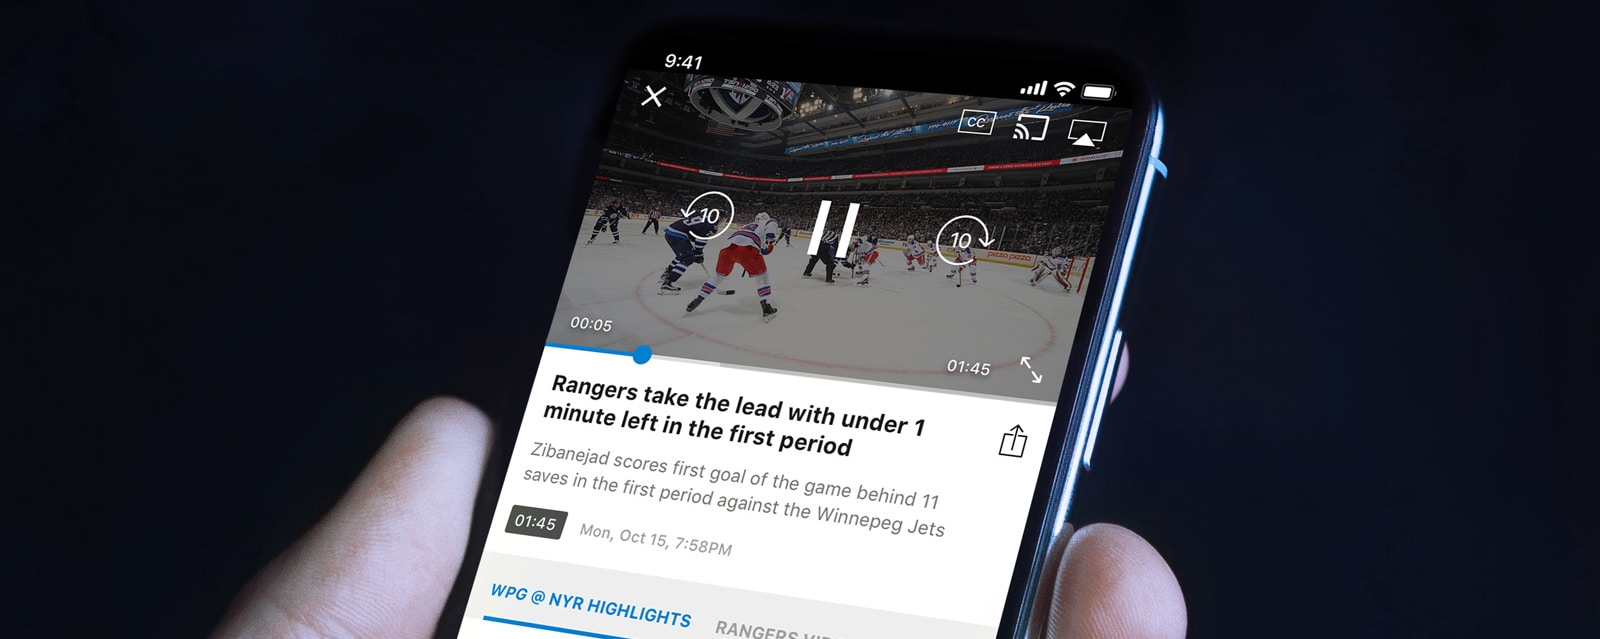 Disney Streaming Services and NHL Introduce New Digital Experiences for Hockey Fans